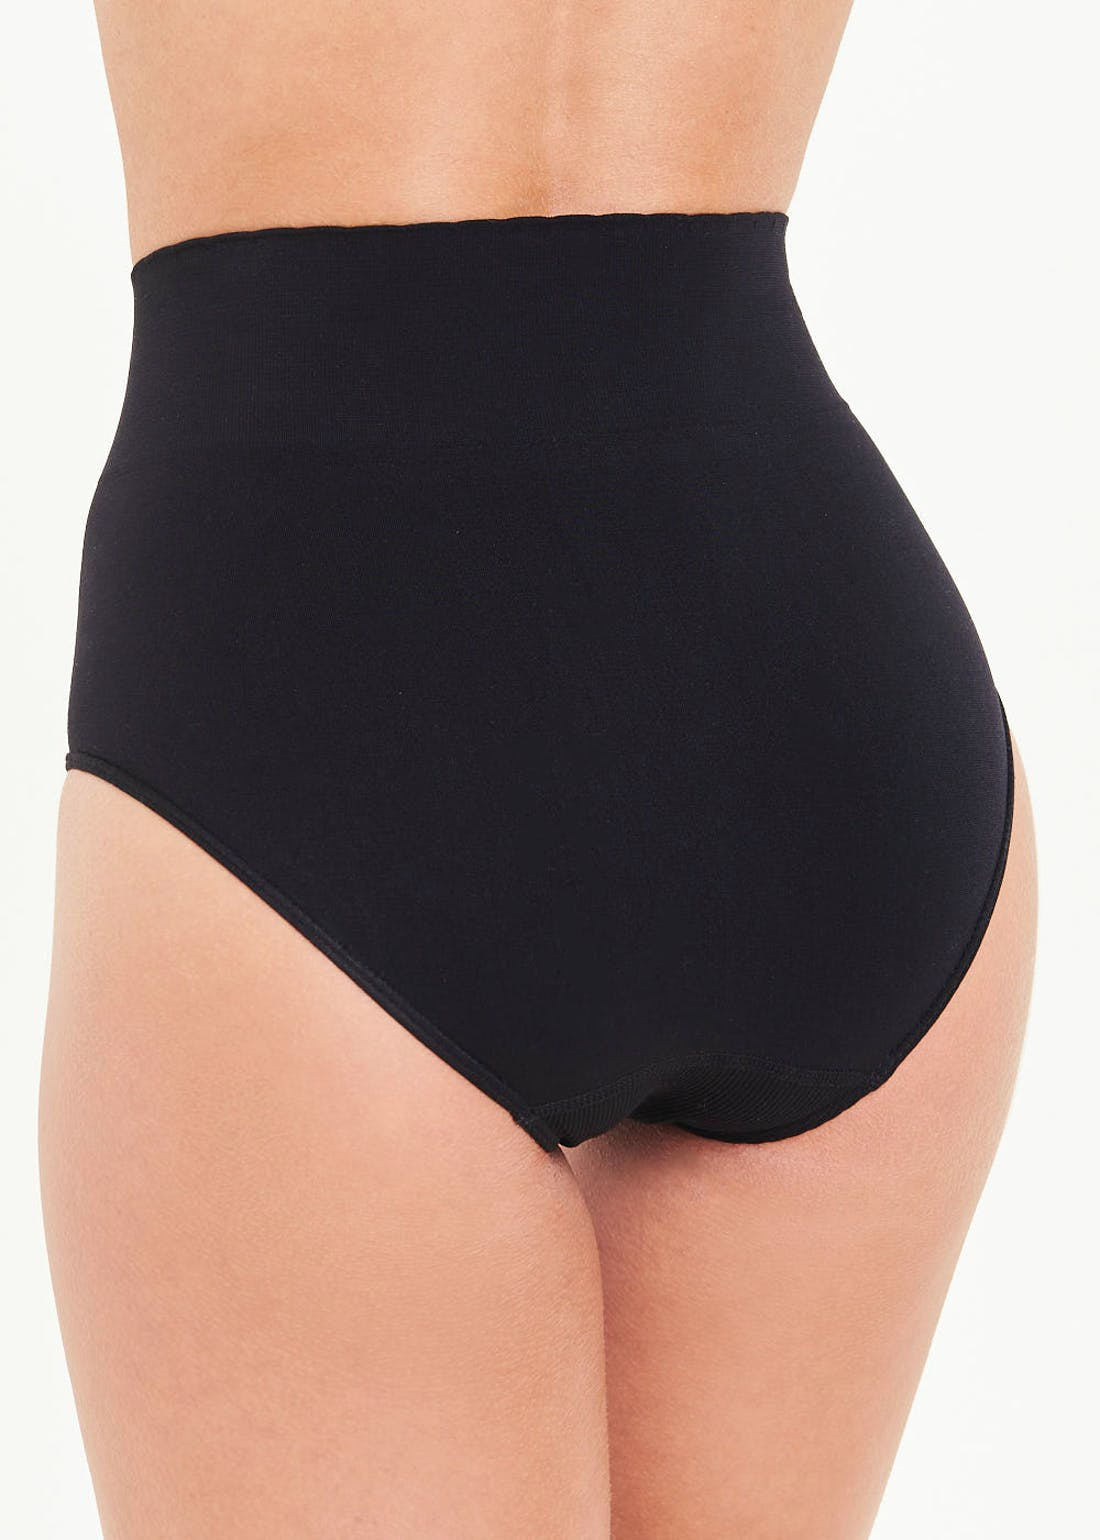 3 Pack Seam Free Light Control Knickers